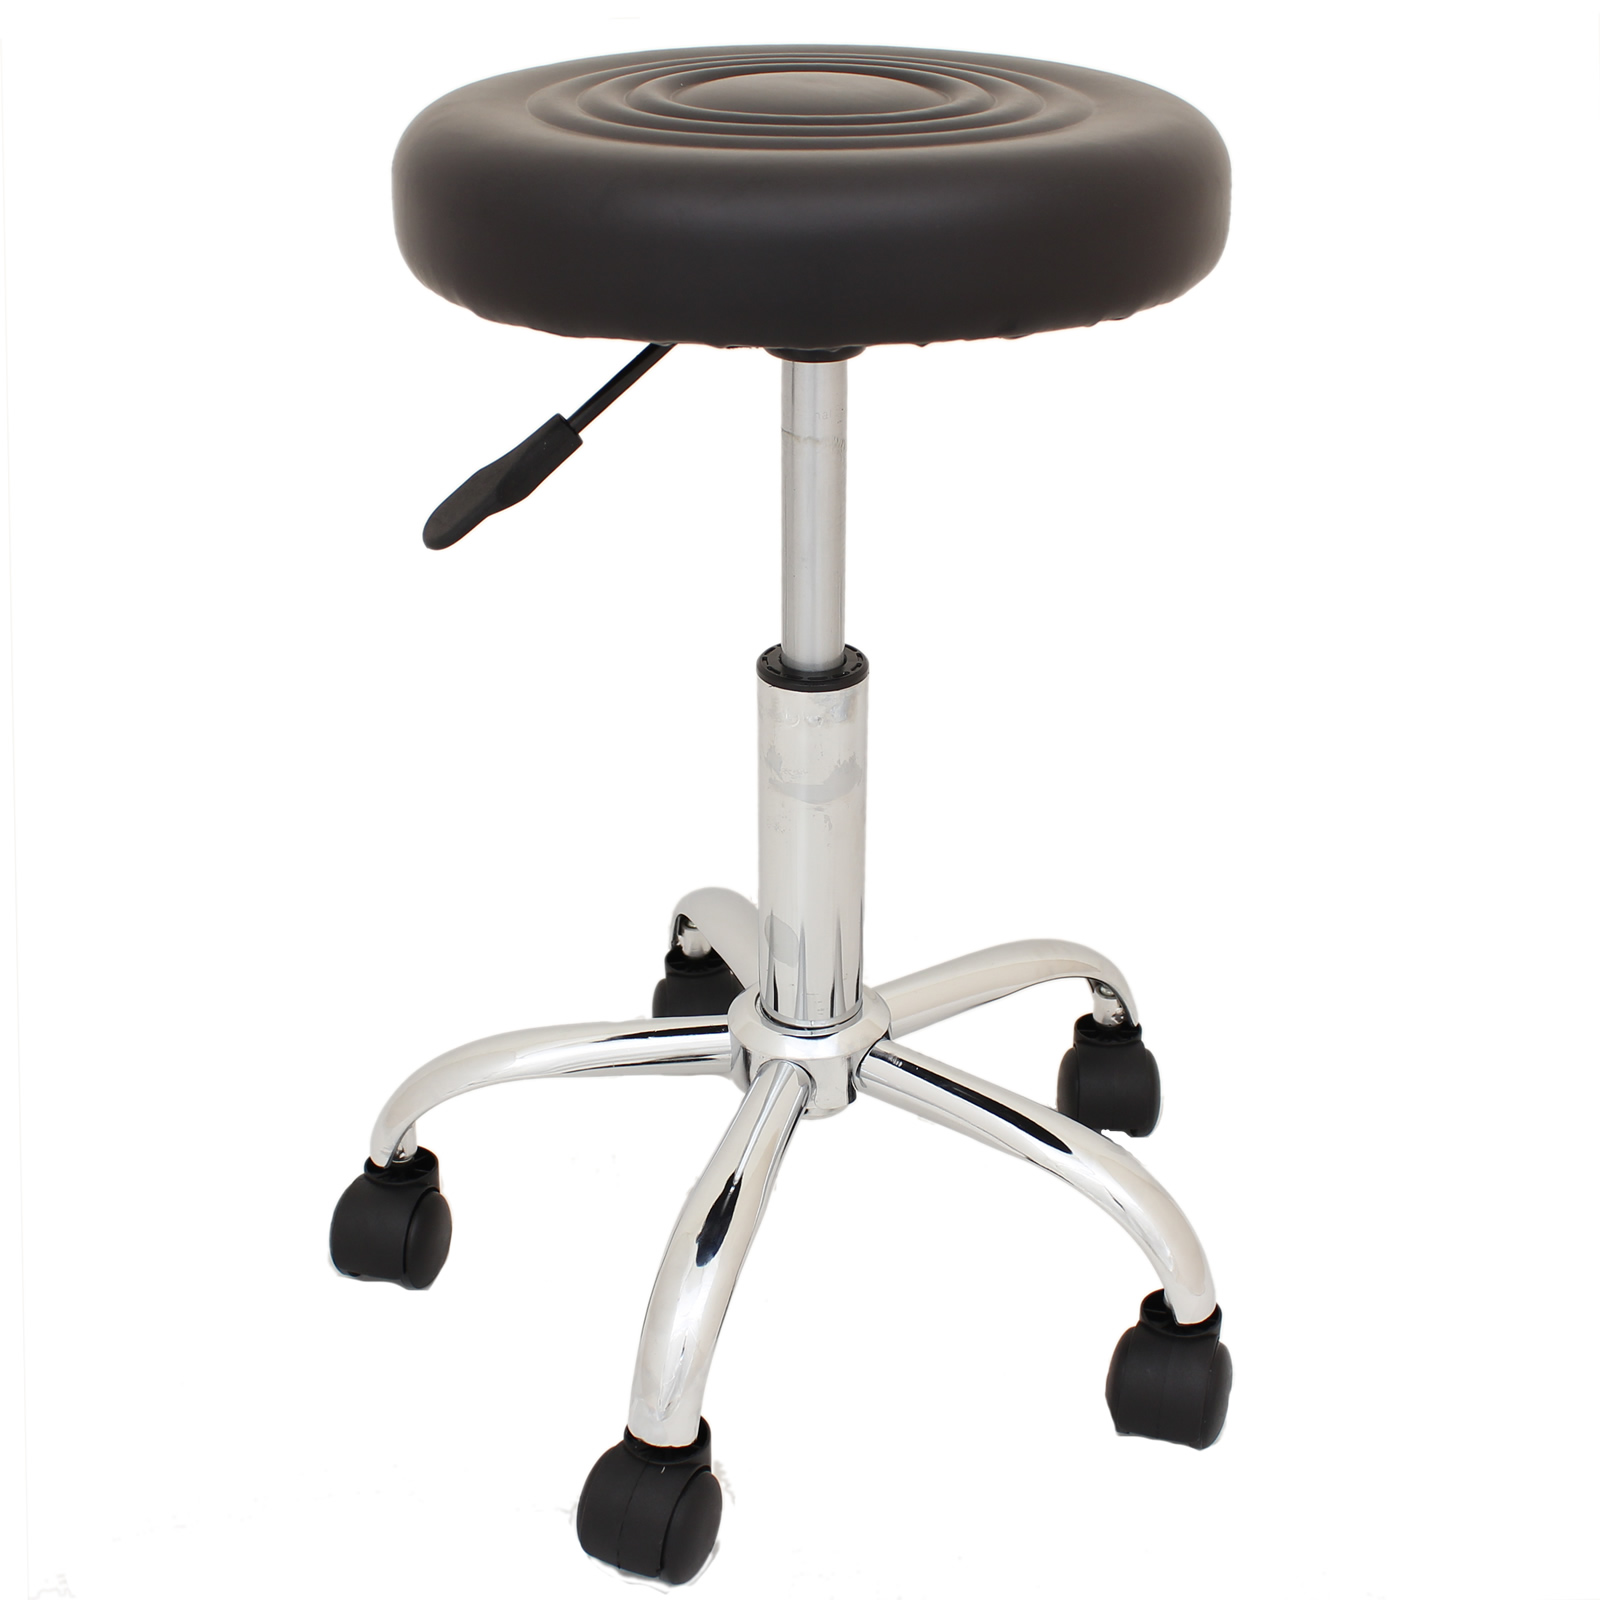 tattooing chairs for sale the first years high chair booster seat adjustable round swivel stool tattoo nail technician